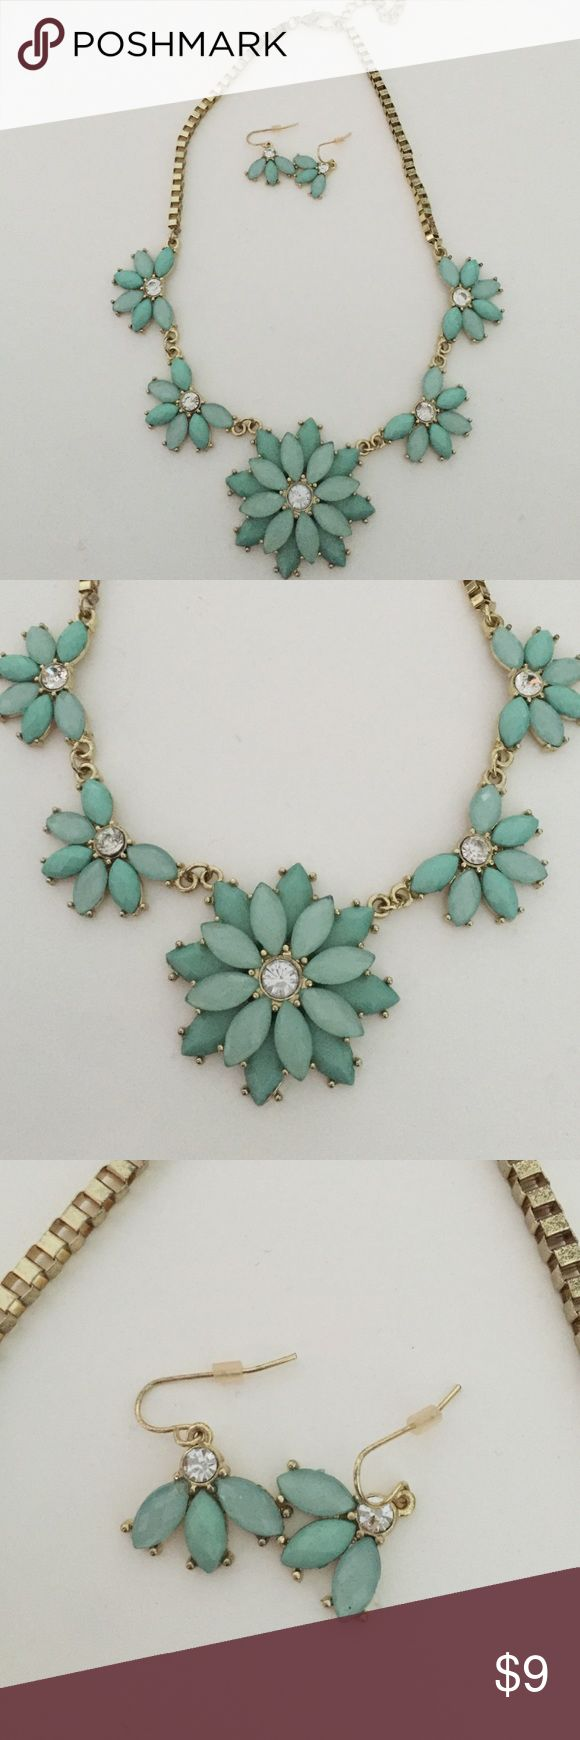 Charming Charlie's accent necklace and earring set Never worn Charming Charlie's accent necklace and earring set. Perfect for any night out. A beautiful turquoise color Charming Charlie Jewelry Necklaces